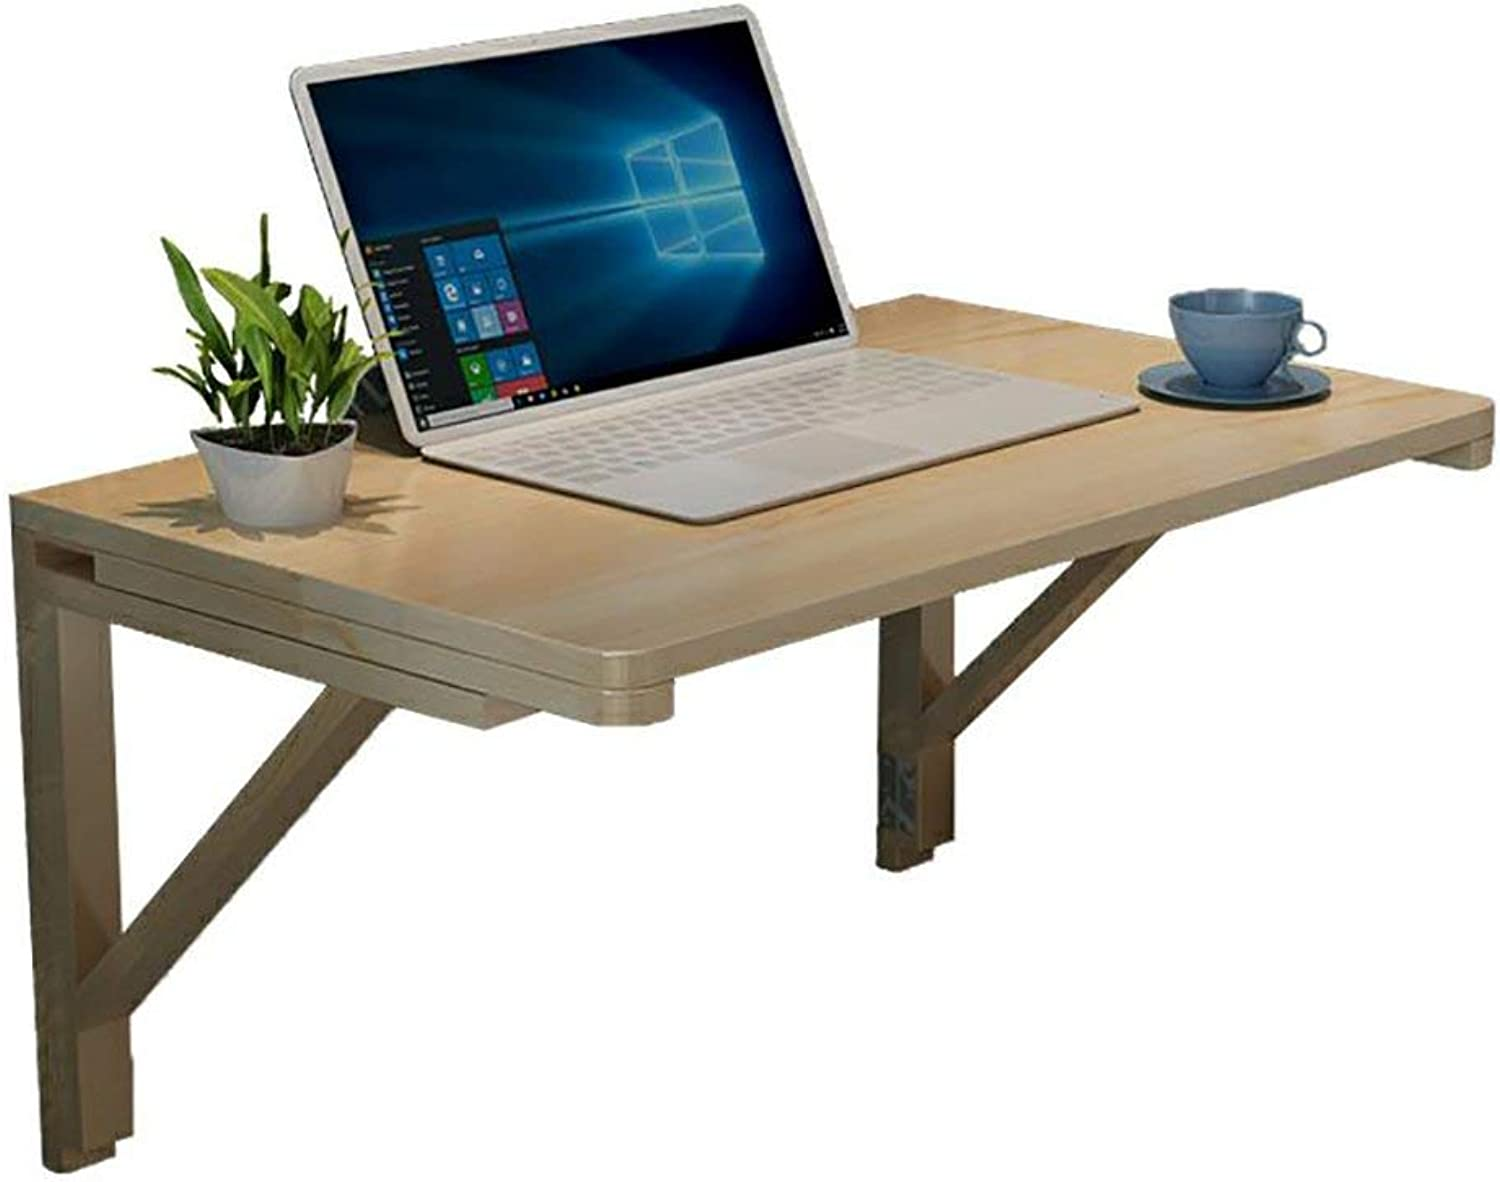 GWM Wall-Mounted Foldable Wood Table Multifunctional Practical Thickening Living Room Dining Learning Table Computer Desk, Log color (Size   50  30cm)